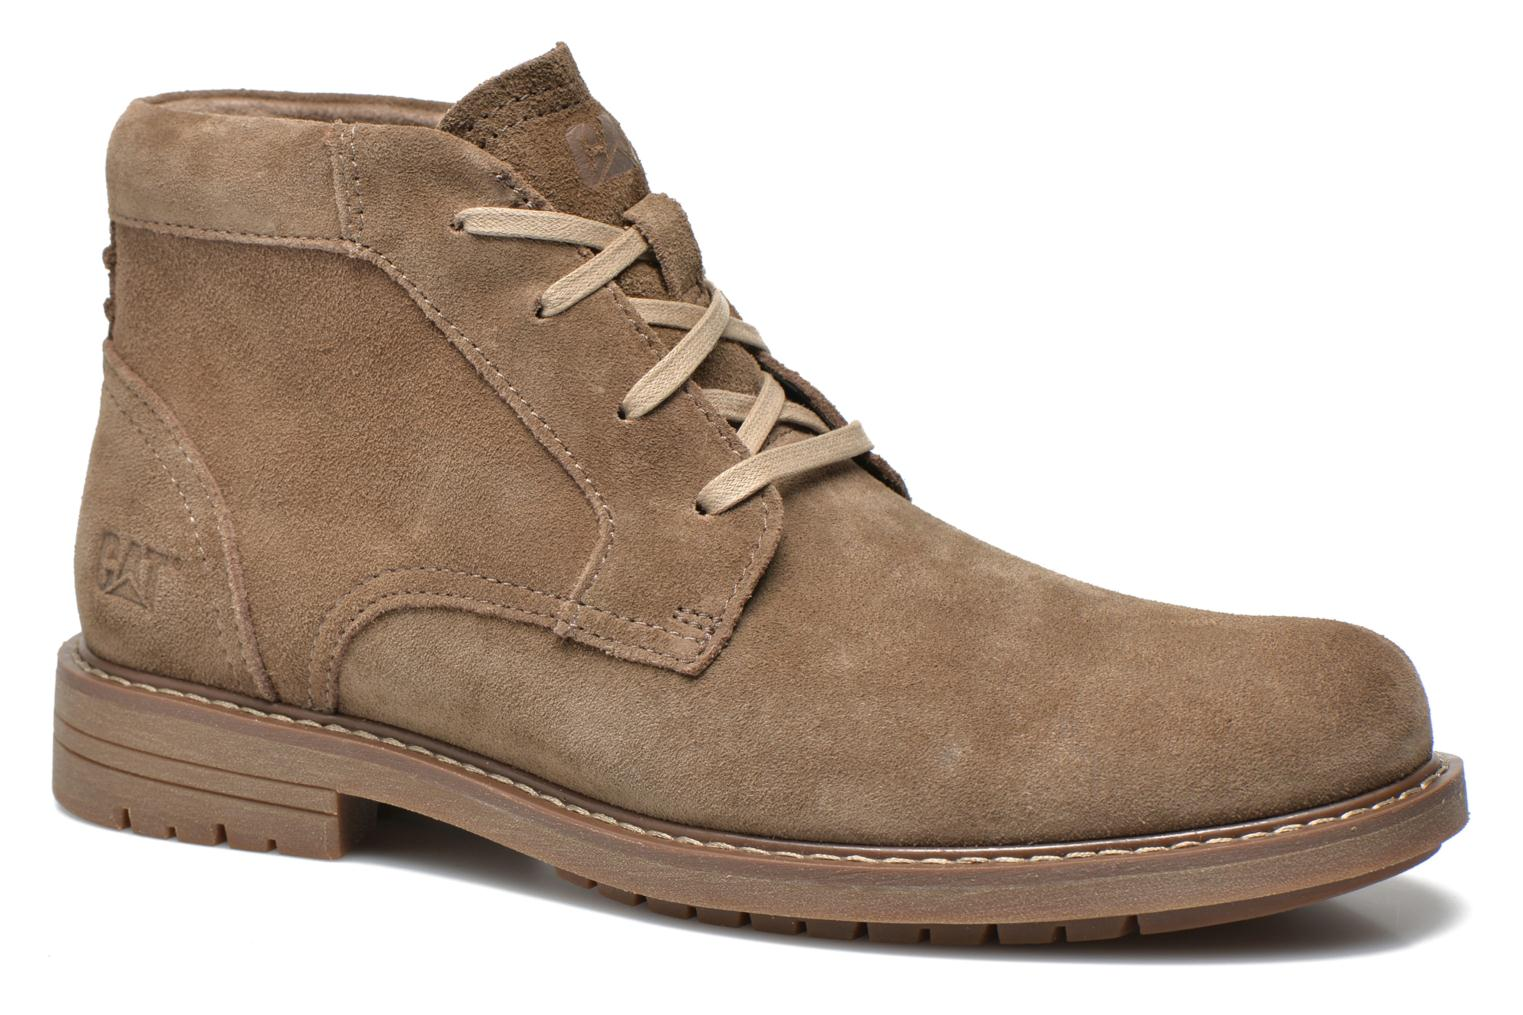 Bottines et boots Caterpillar Brock Marron vue détail/paire